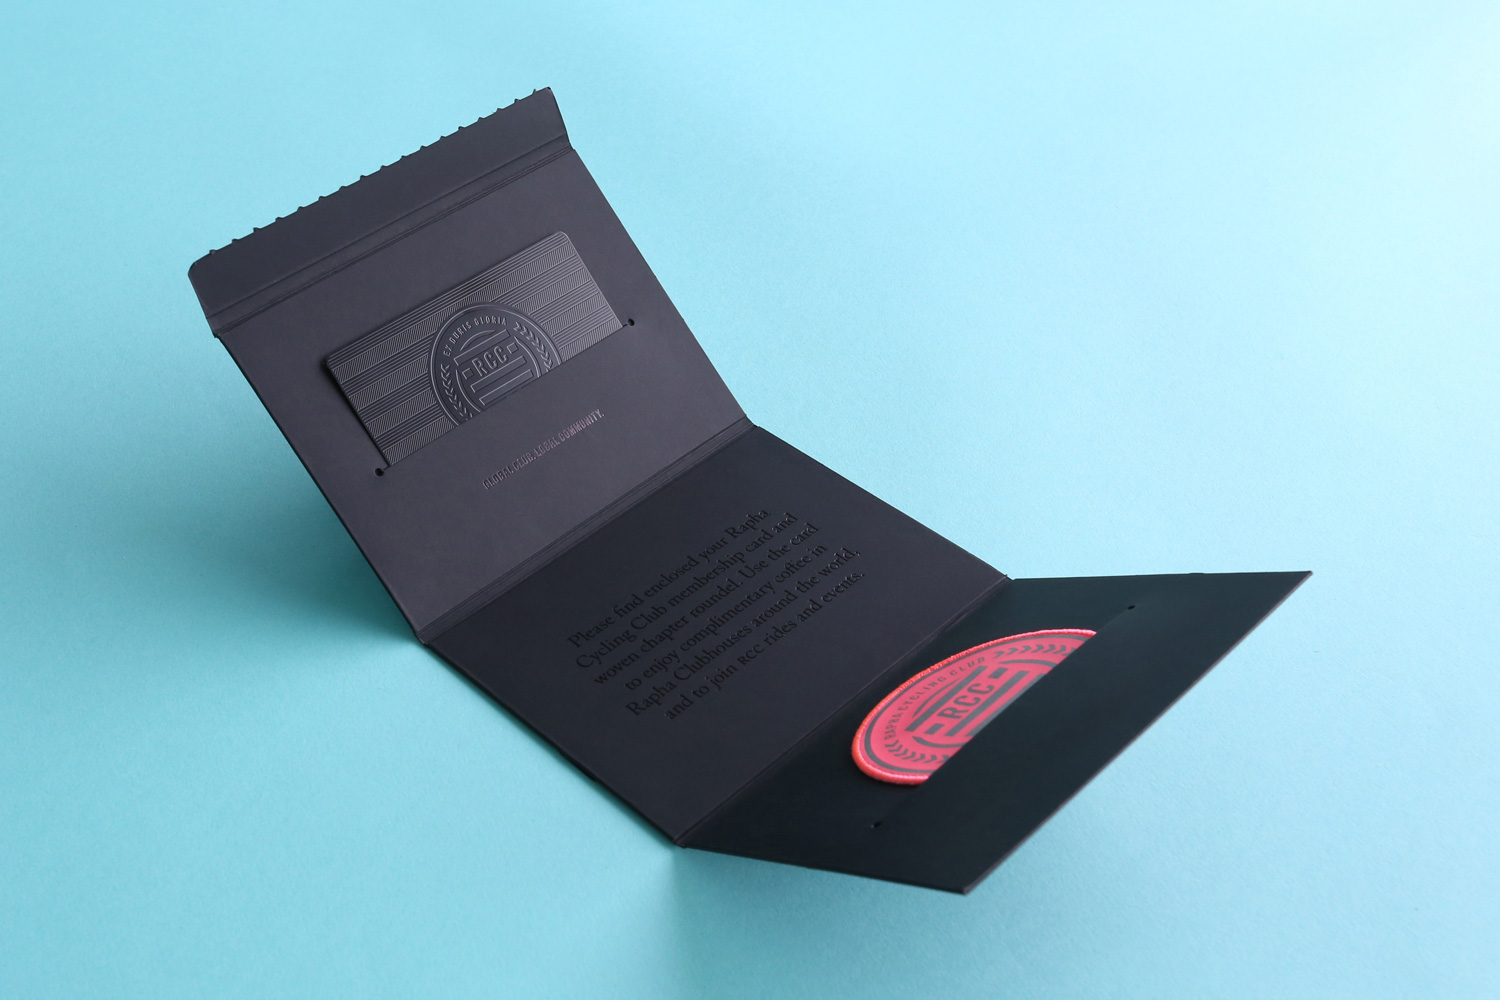 Progress Packaging Creative Production Manufacture Print Card Envelope Membership Credit Self Assembly Secure Tactile Rubber Effect Direct Mail Marketing Welcome